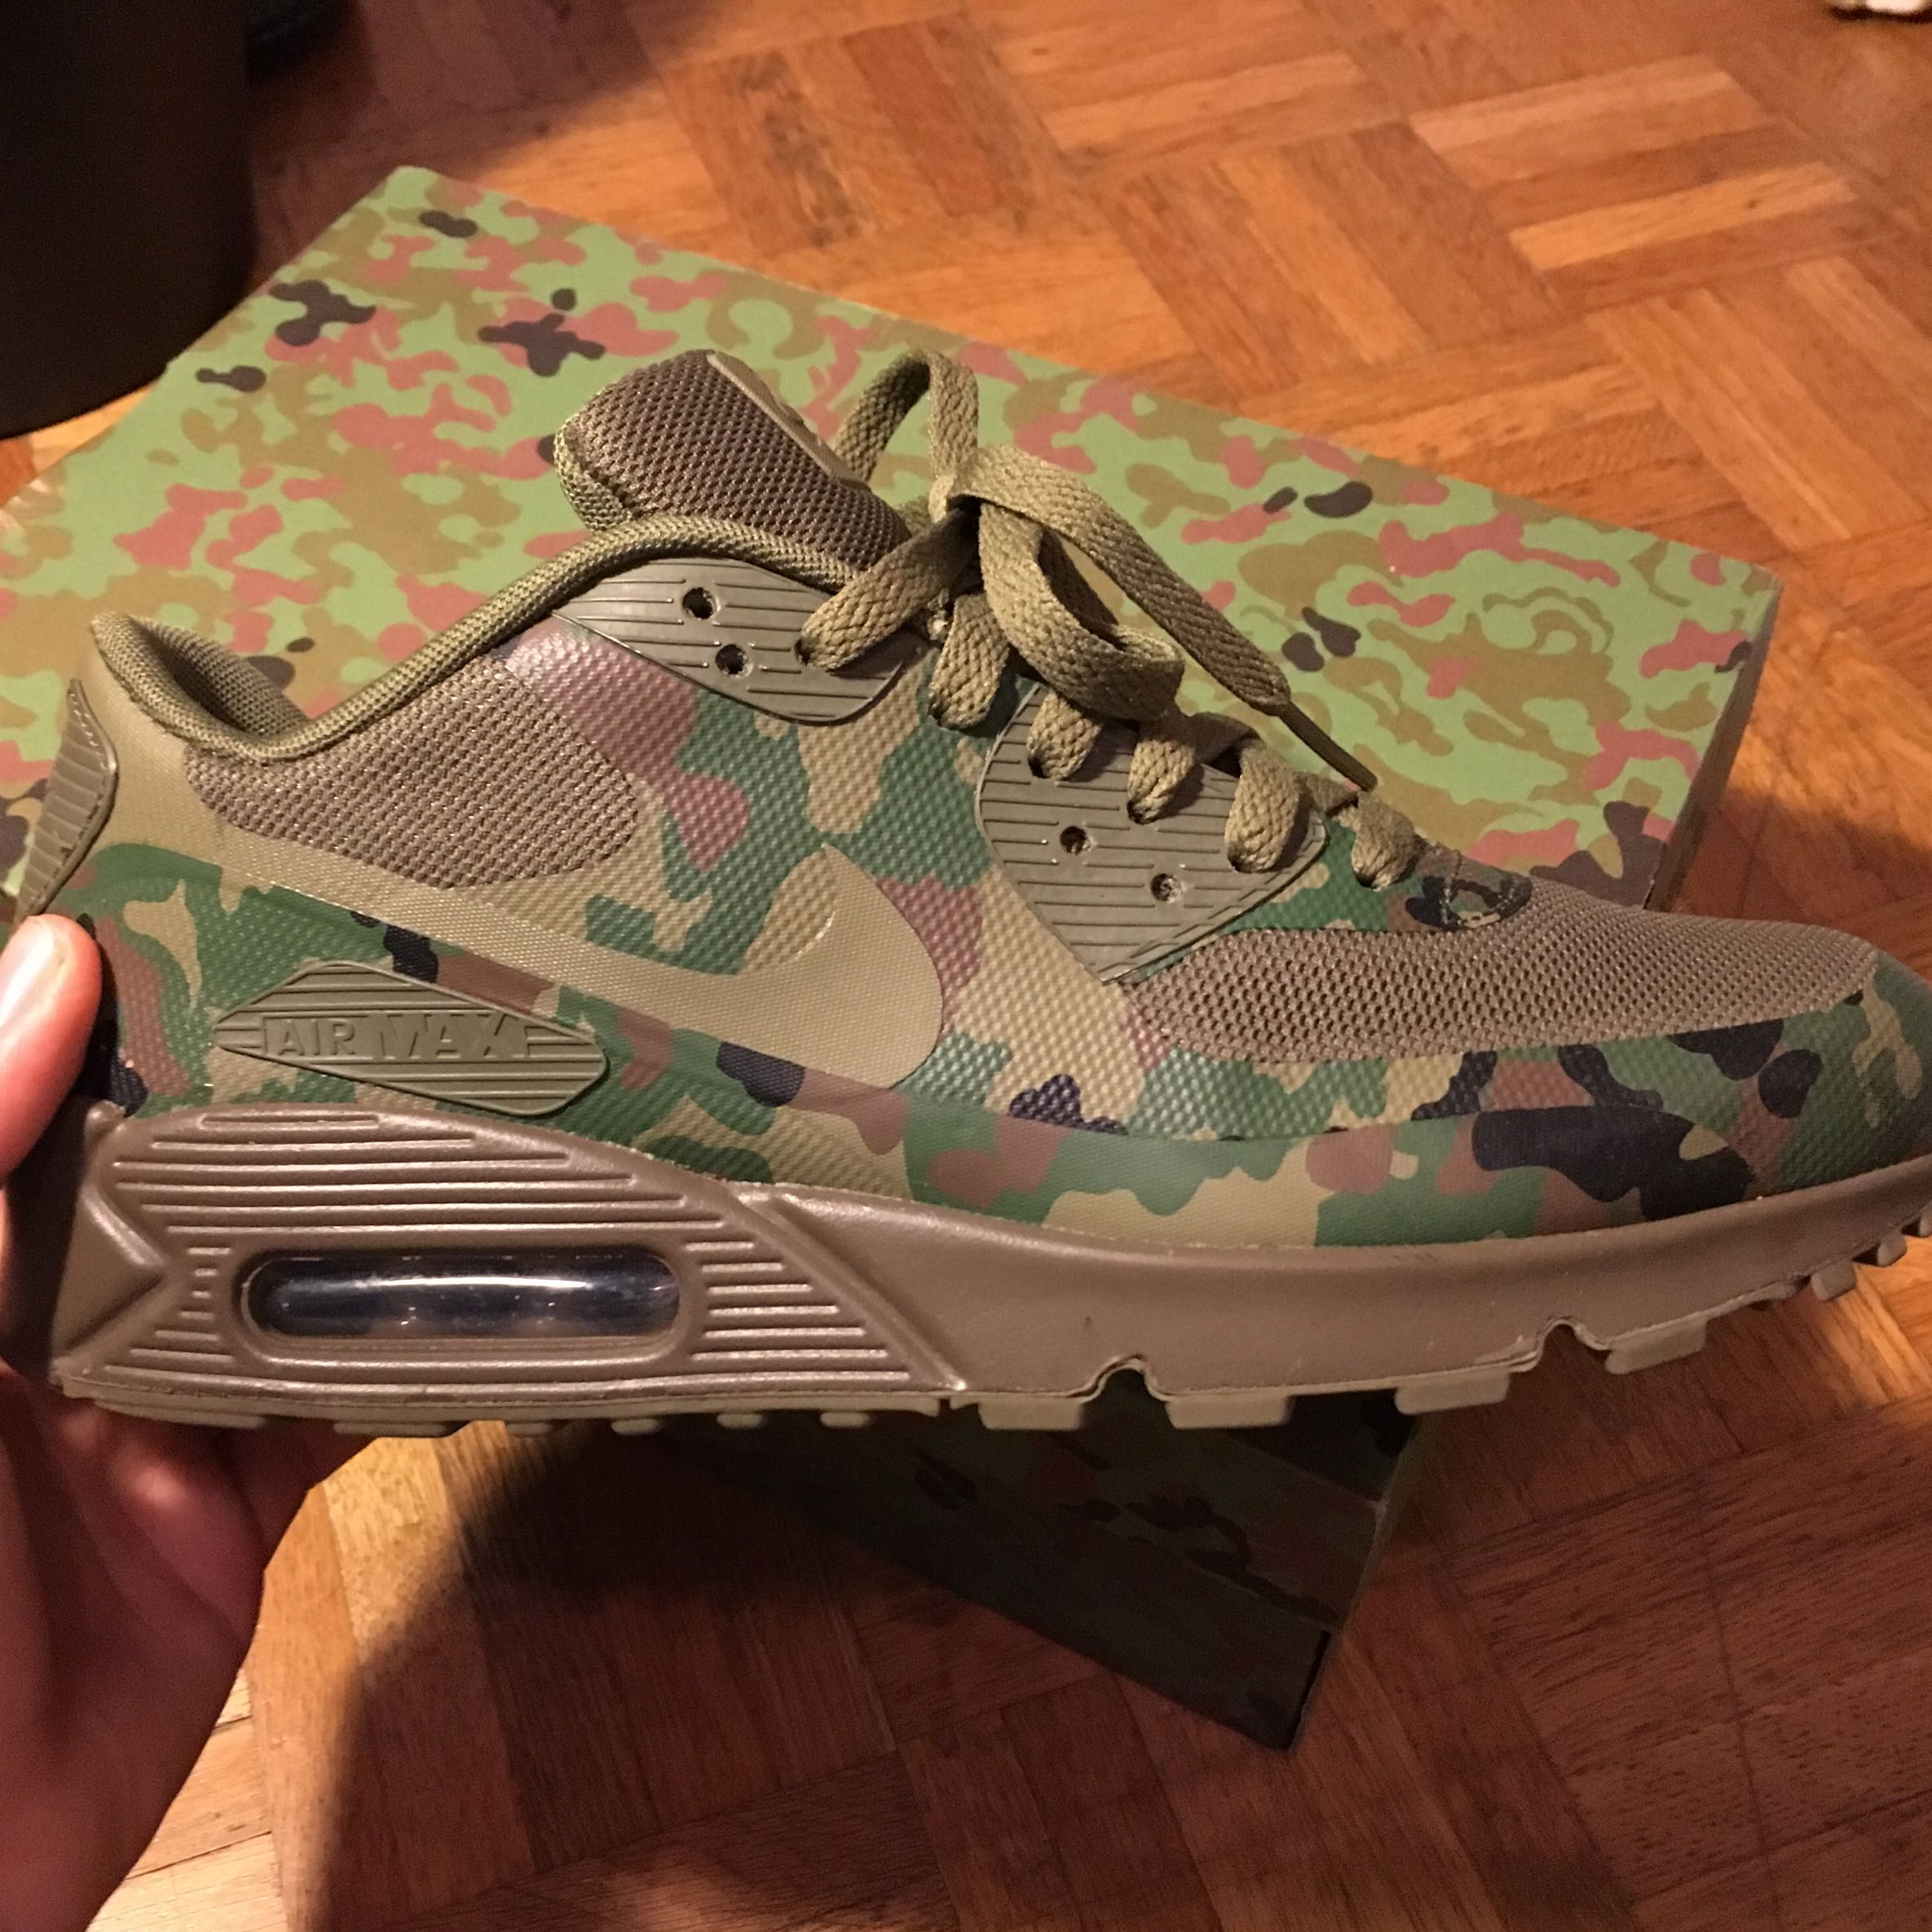 wie viel sind meine schuhe noch wert air max 90 japan sp camo nike sneaker hyperfuse. Black Bedroom Furniture Sets. Home Design Ideas